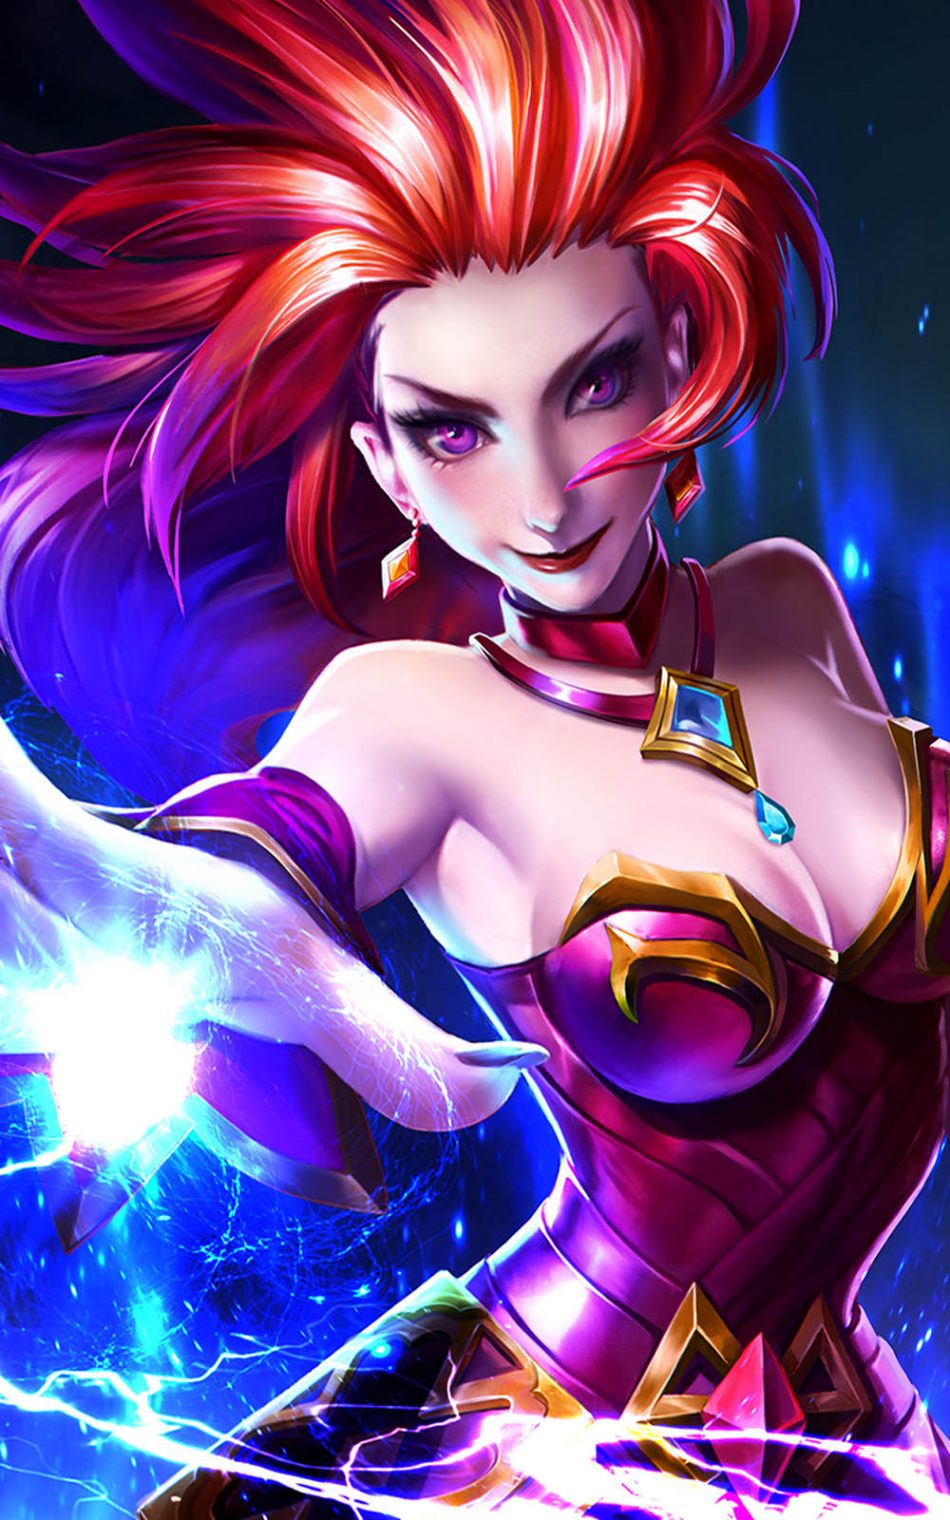 Flame Red Lips Eudora Mobile Legends Free 4K Ultra HD Mobile